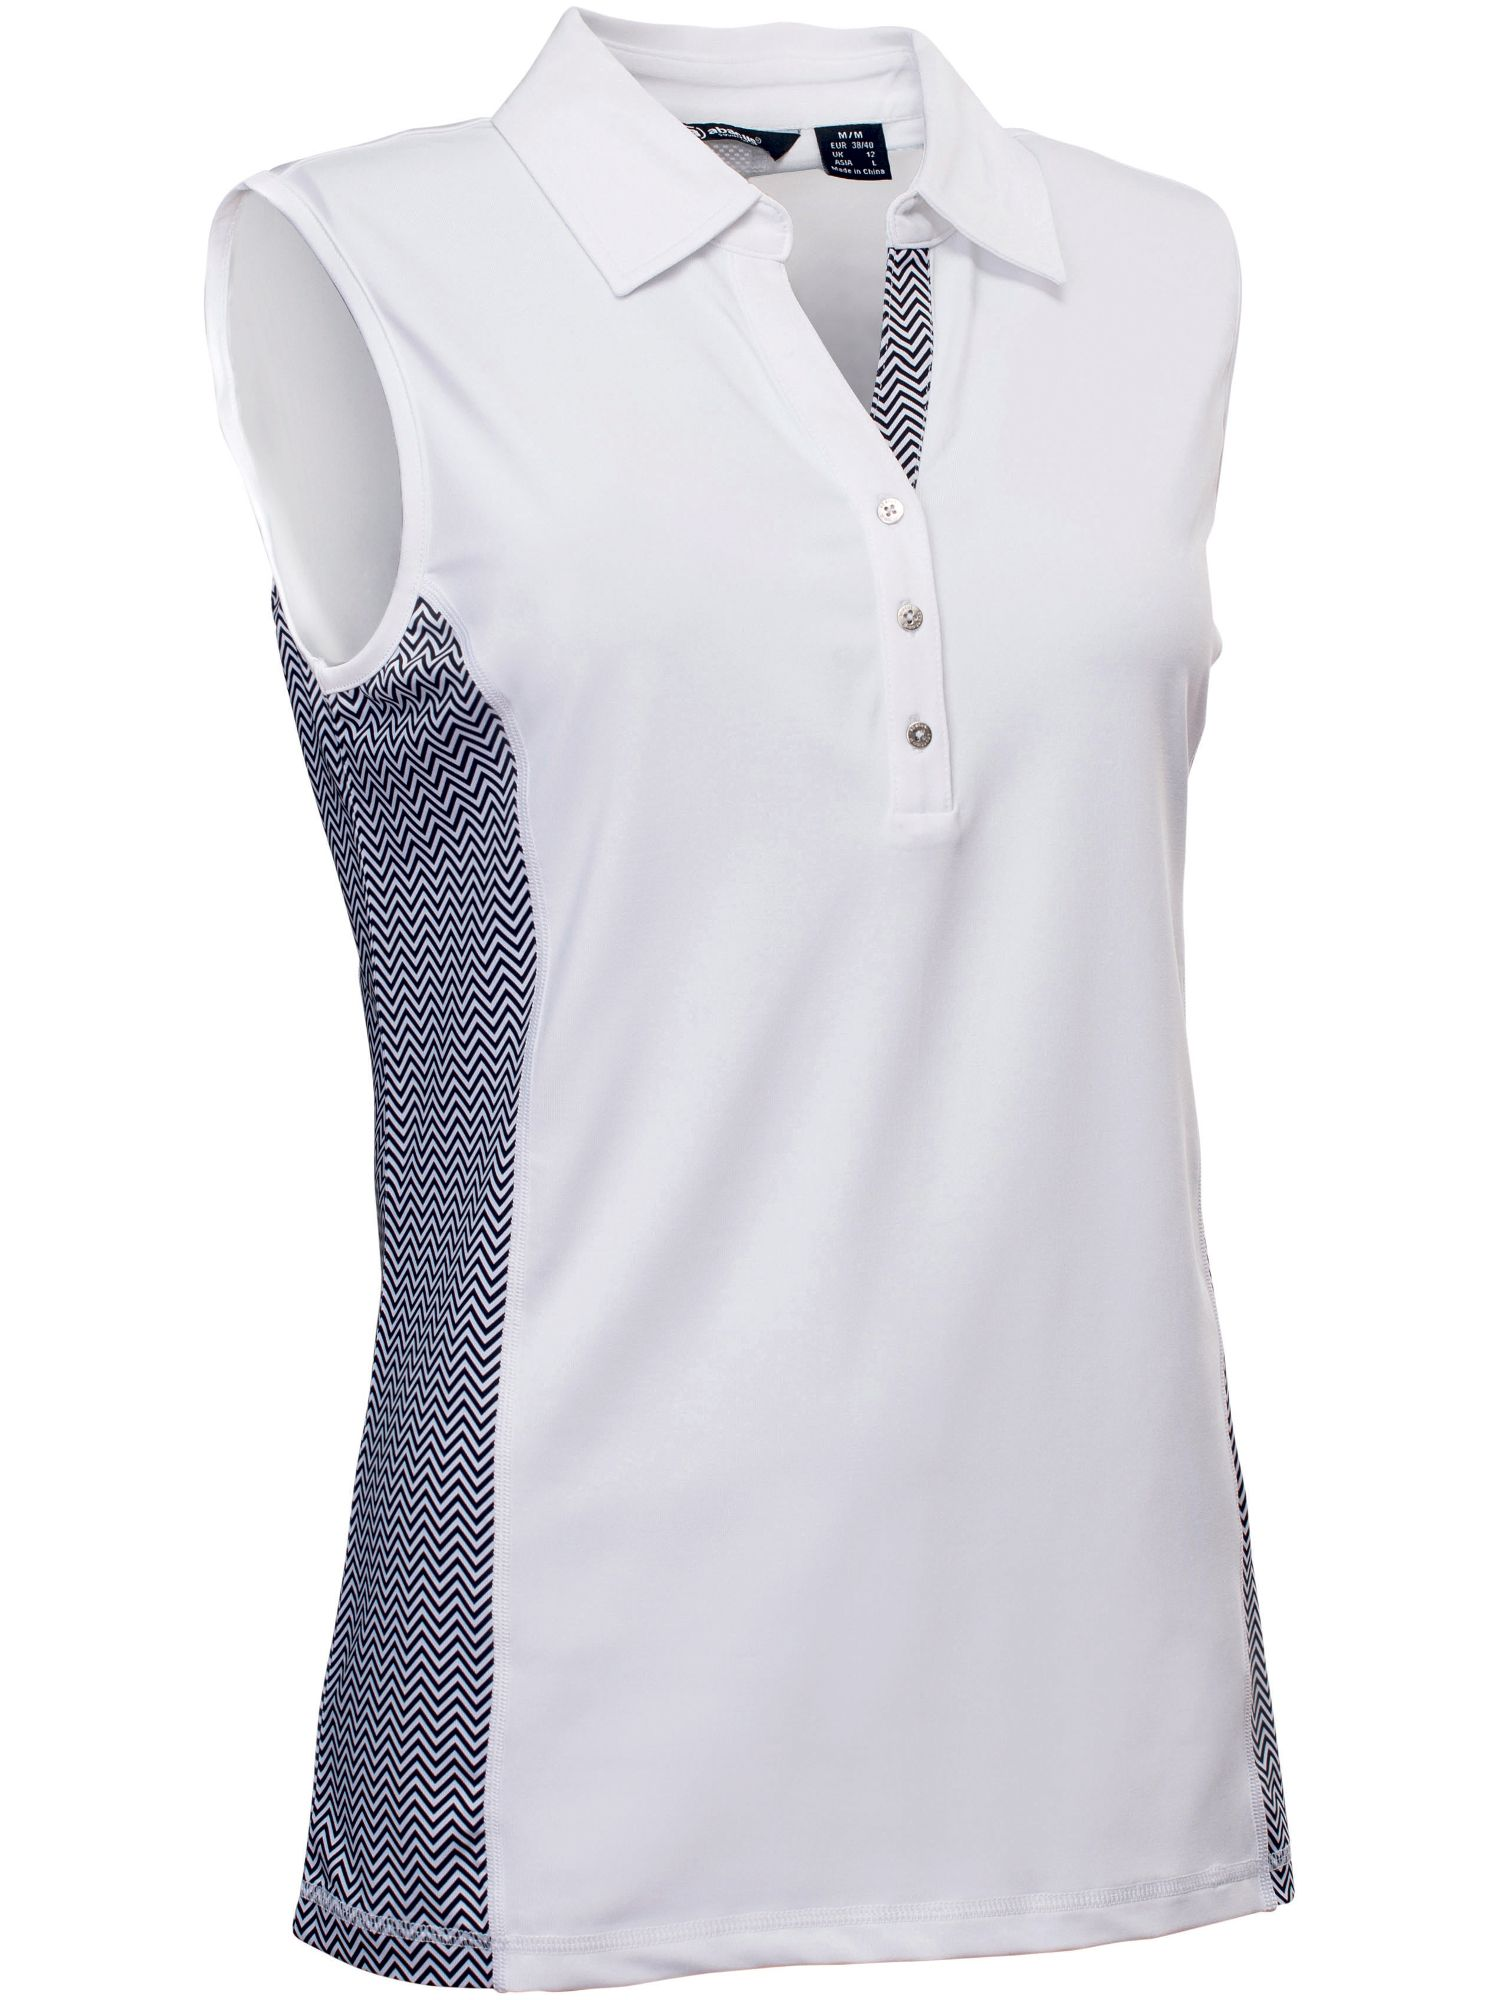 Abacus Karin Sleeveless Polo, White